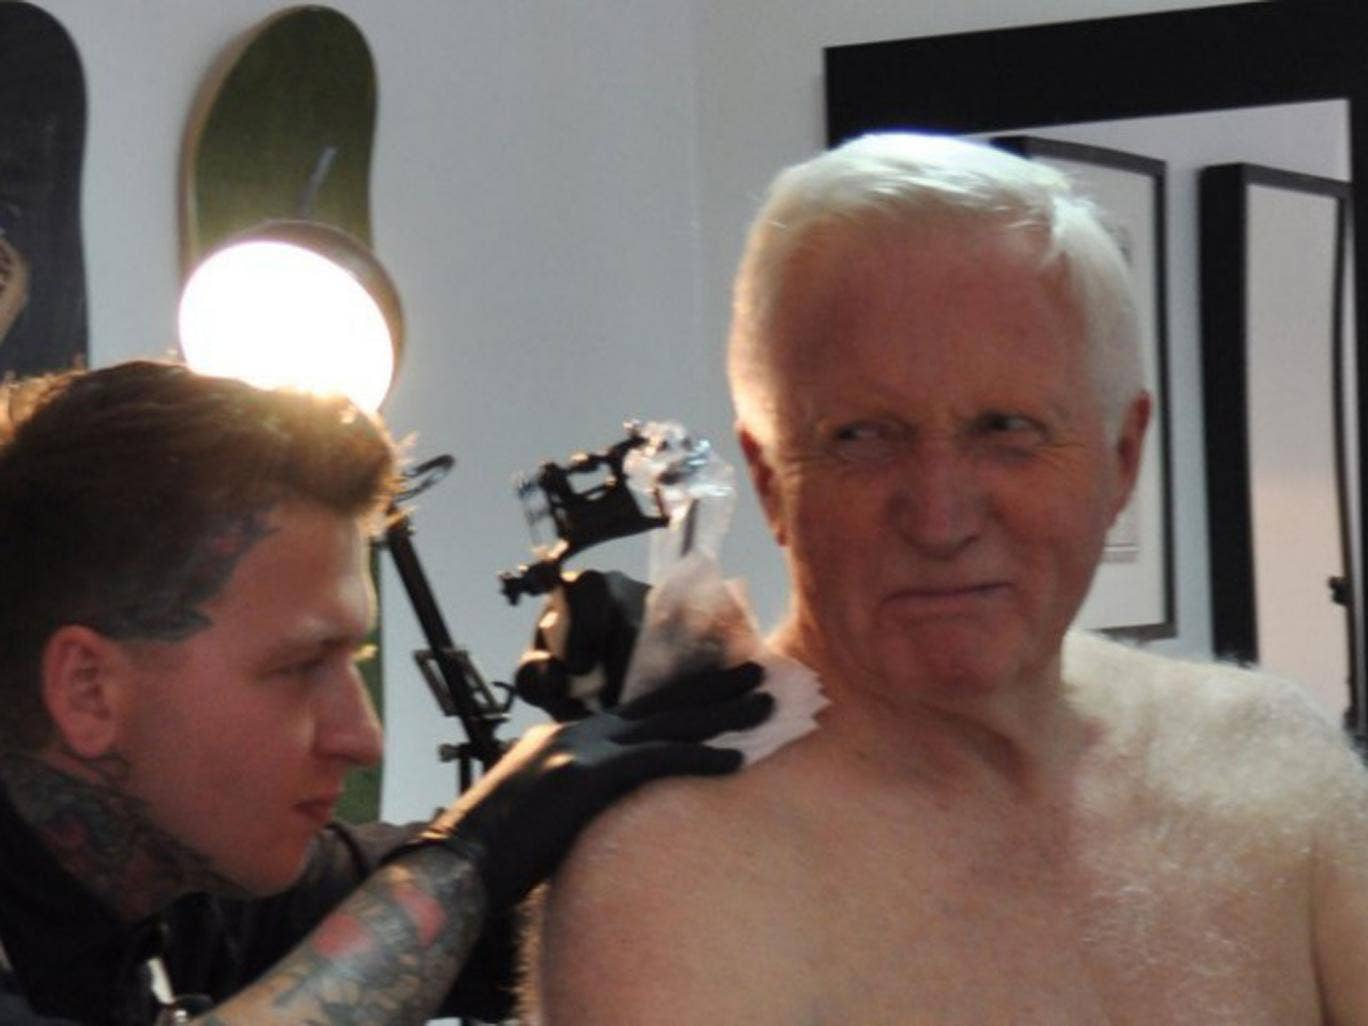 Dimbleby visited the Vagabond tattoo studio in east London, followed by cameramen for the 30-minute procedure